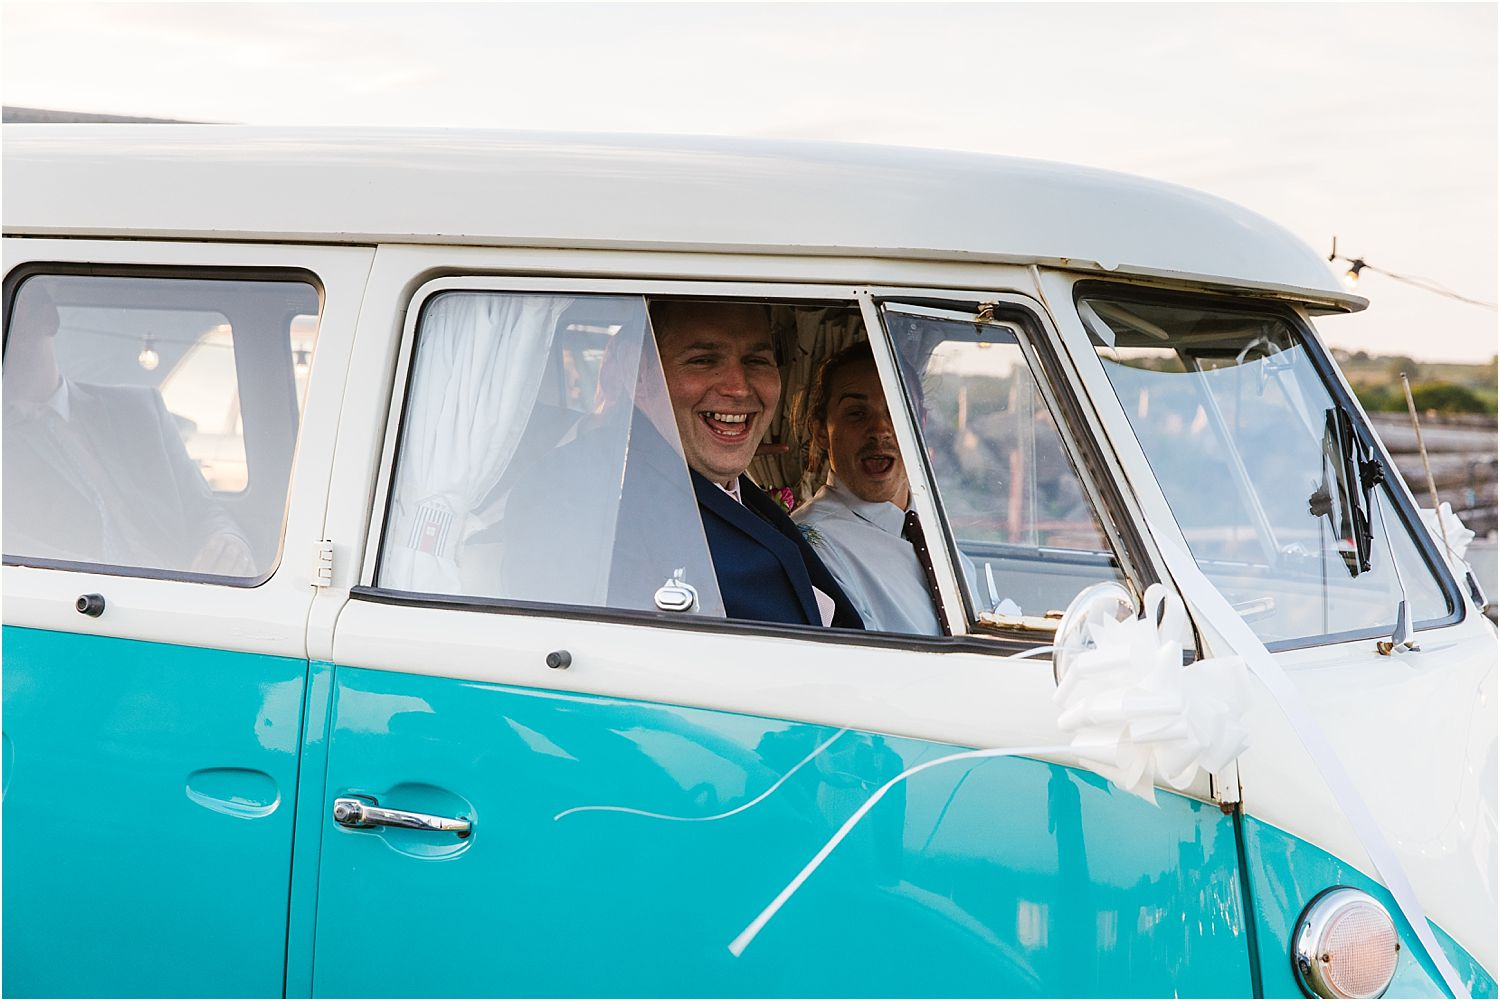 Bridegroom and guests in camper van, by Nostalgic Camper Vans of Knutsford, Cheshire